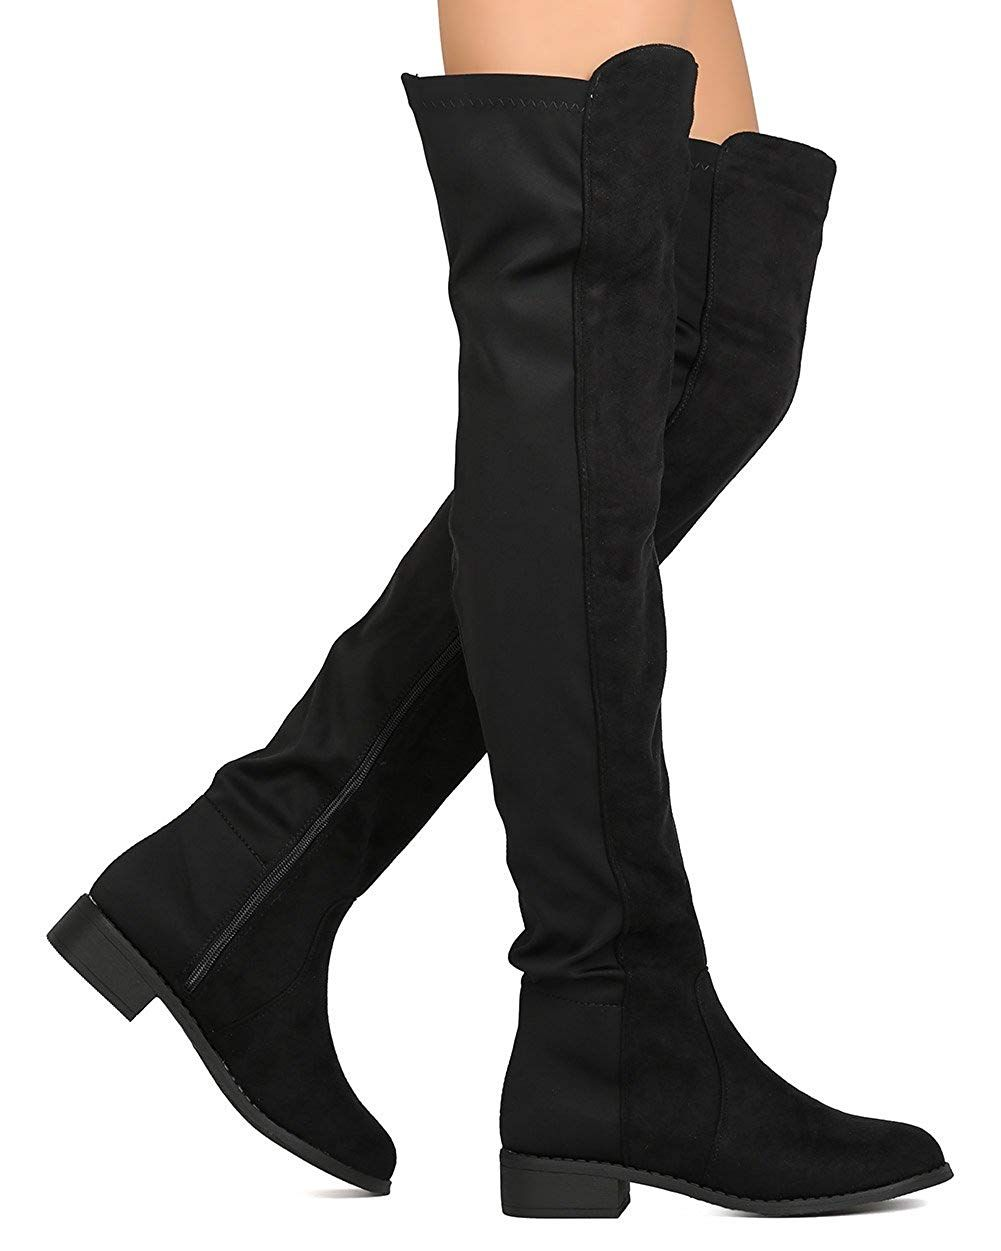 a3db3f6a7b04 ShoBeautiful Women Thigh High Flat Boots Pull on Low Block Heel Over The Knee  Boots by (TM) >>> Many thanks for viewing our photo.